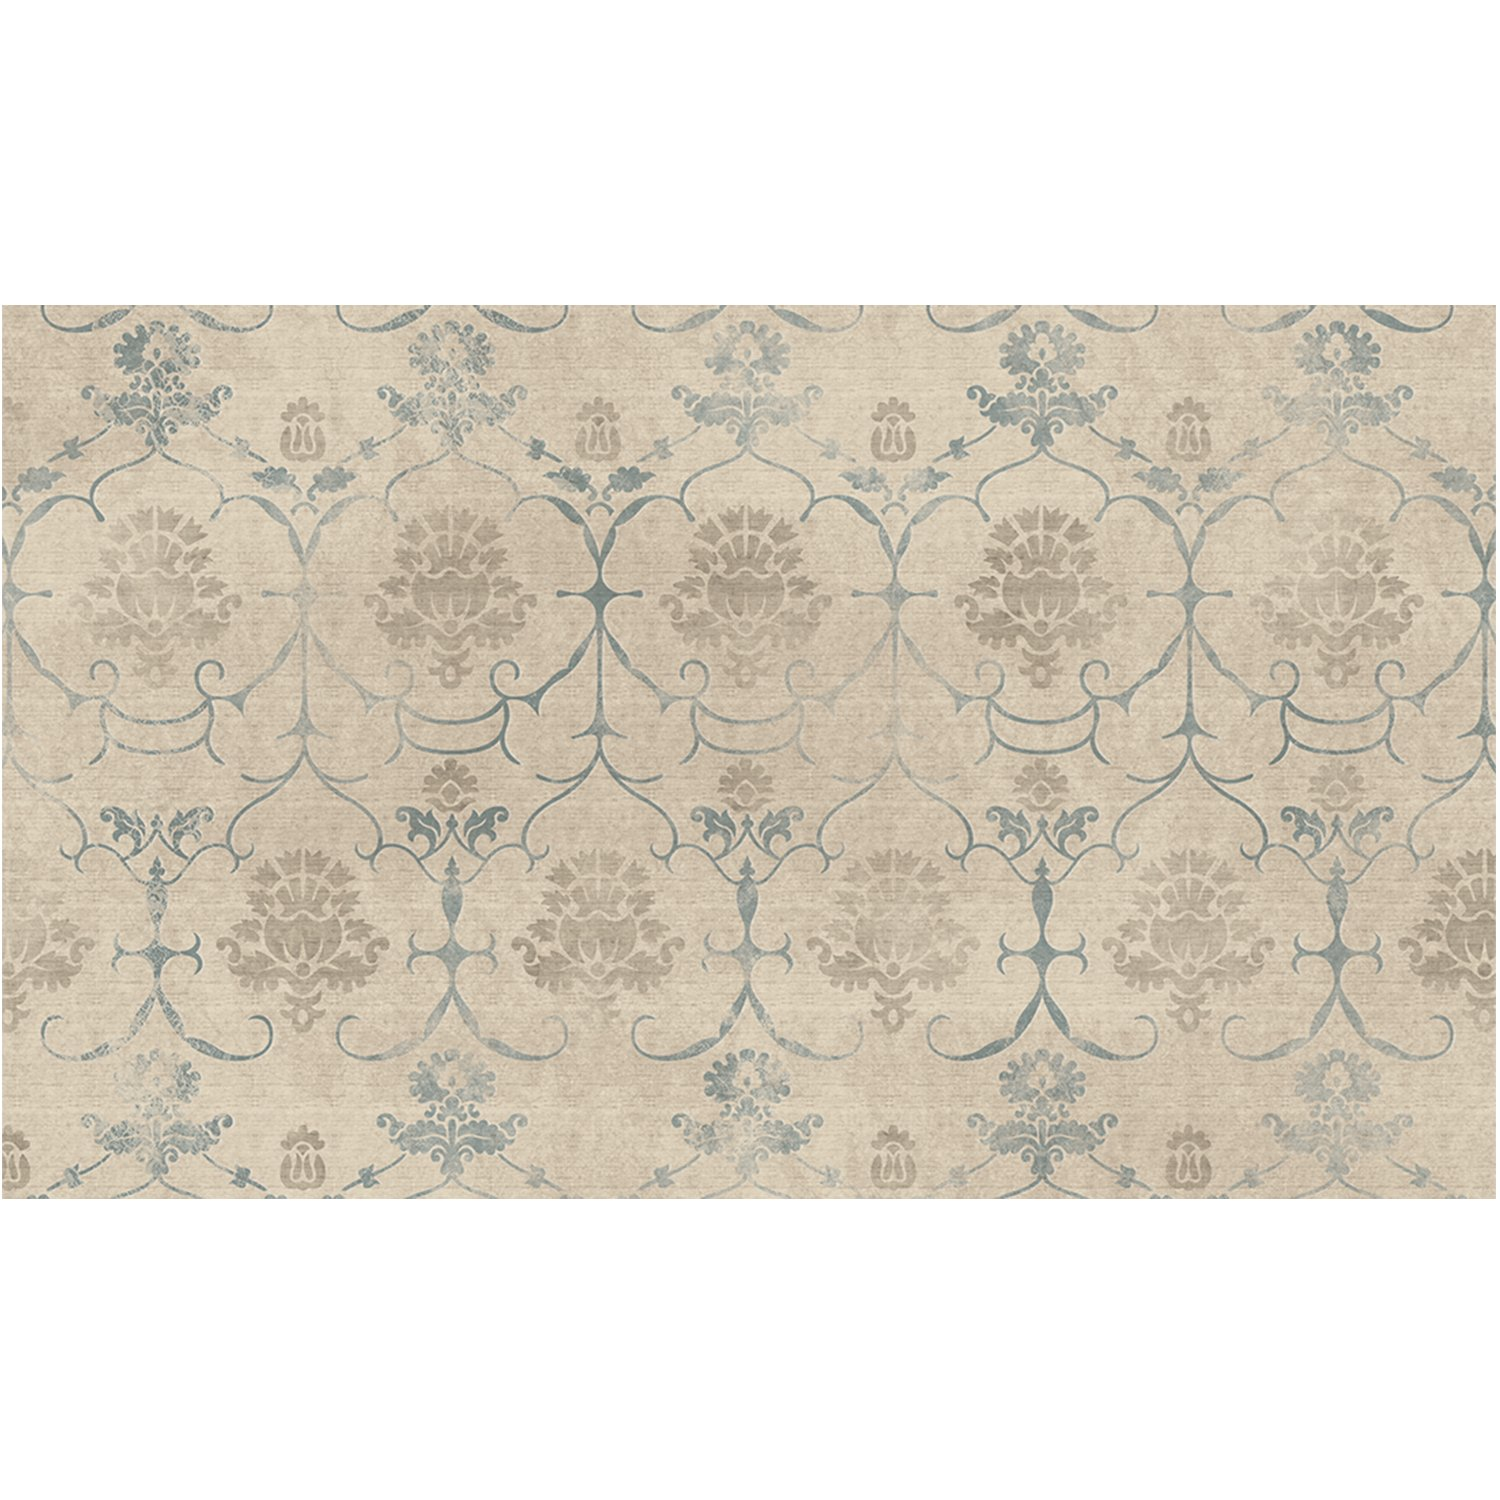 RUGGABLE 148247 Leyla Creme Vintage Washable Indoor/Outdoor Stain Resistant 3'x5' (36'x60') Accent Rug 2-Piece Set (Cover and Pad)